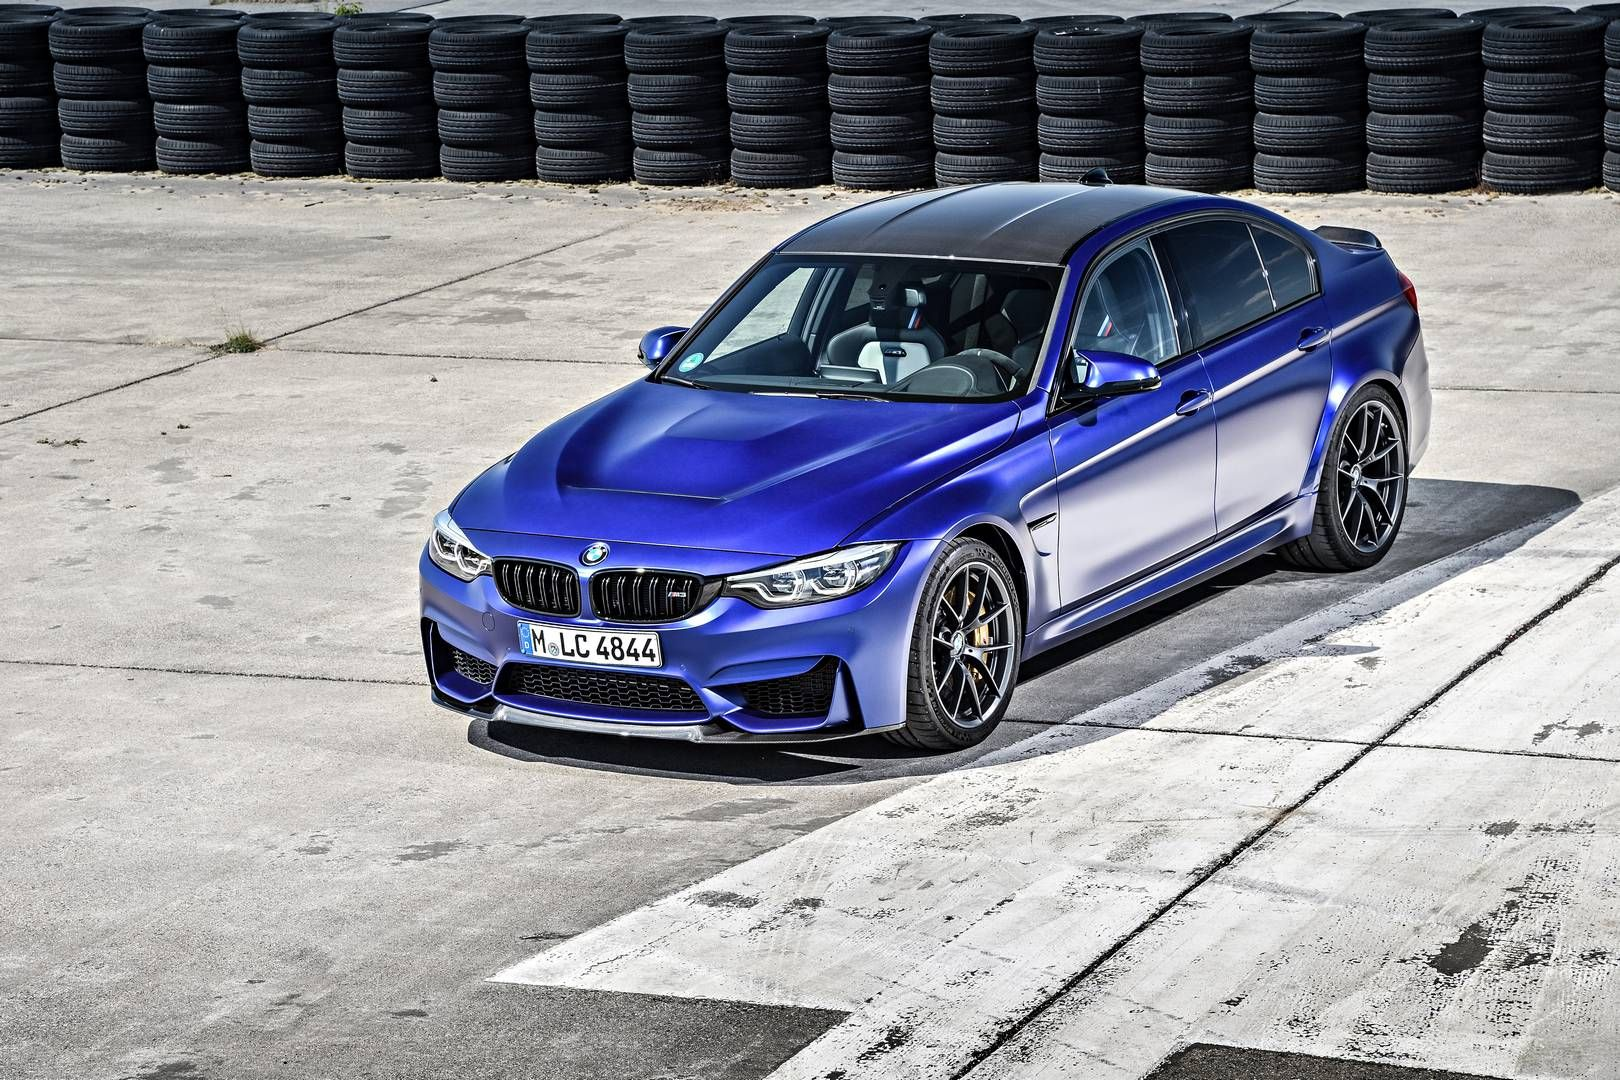 2019 Bmw M3 Cs Review Gtspirit Automobiles To Consider Pinterest